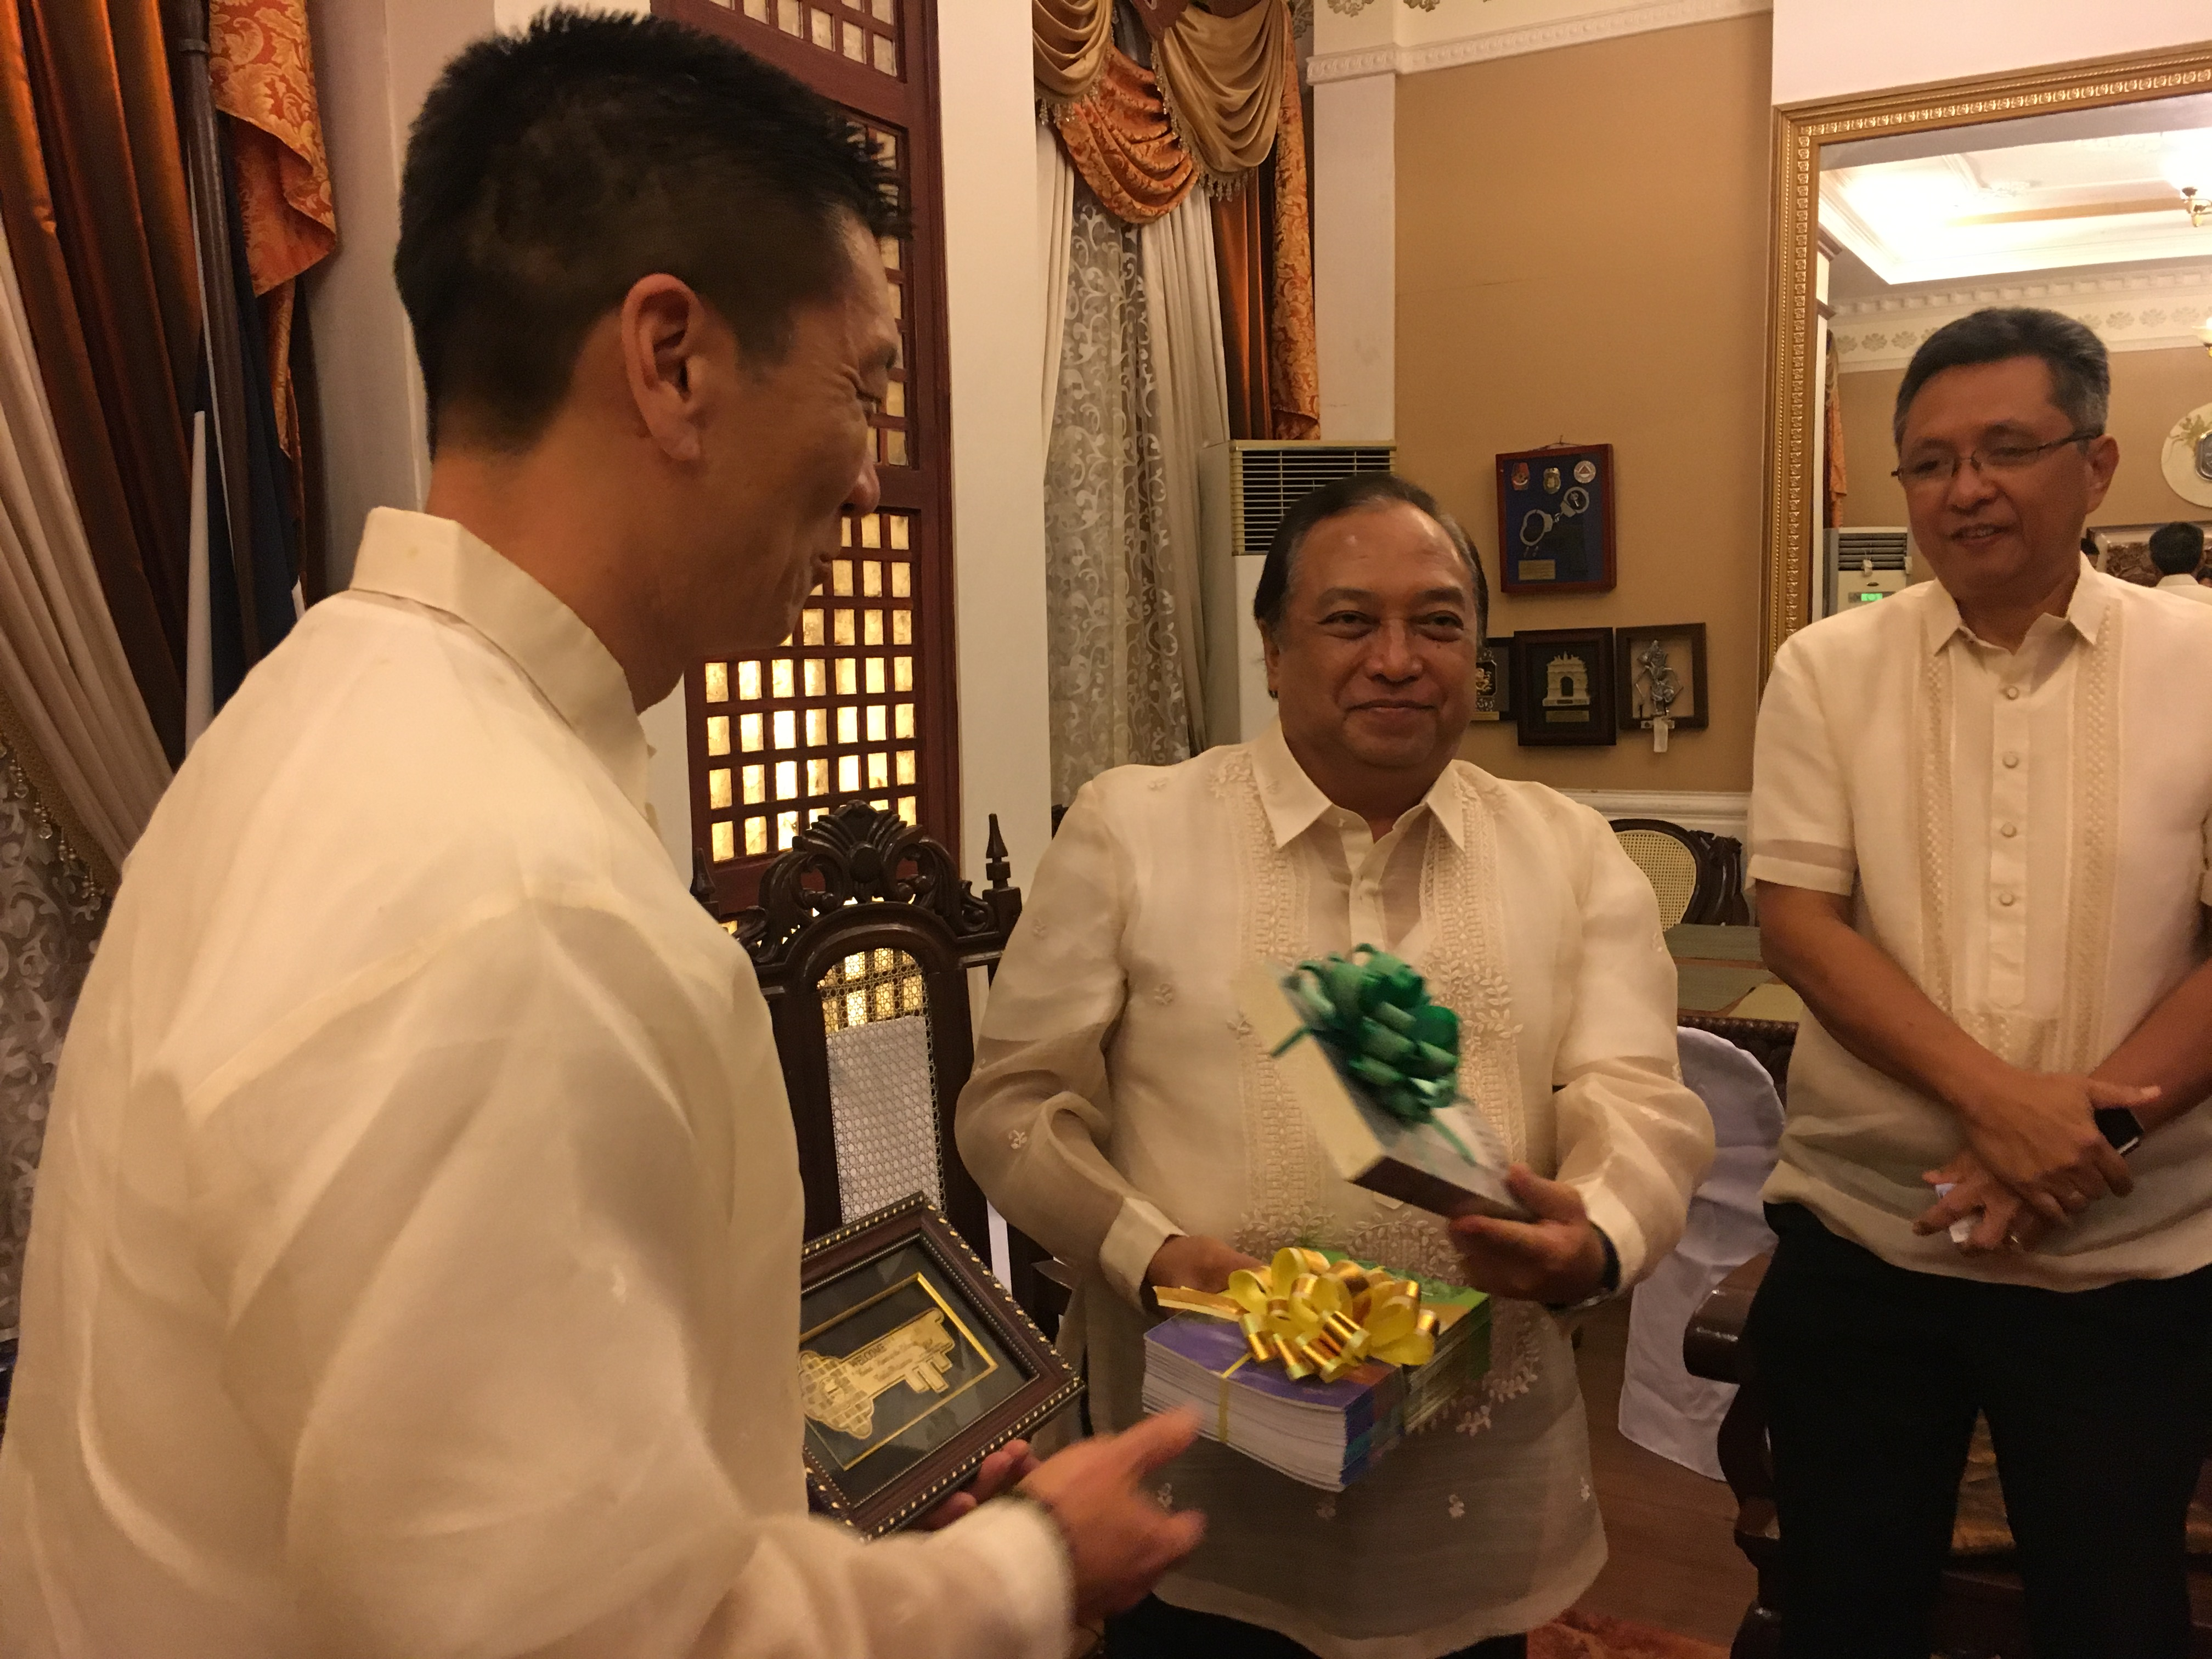 Lt. Gov Chin exchanging gifts with Governor Edgar Chatto